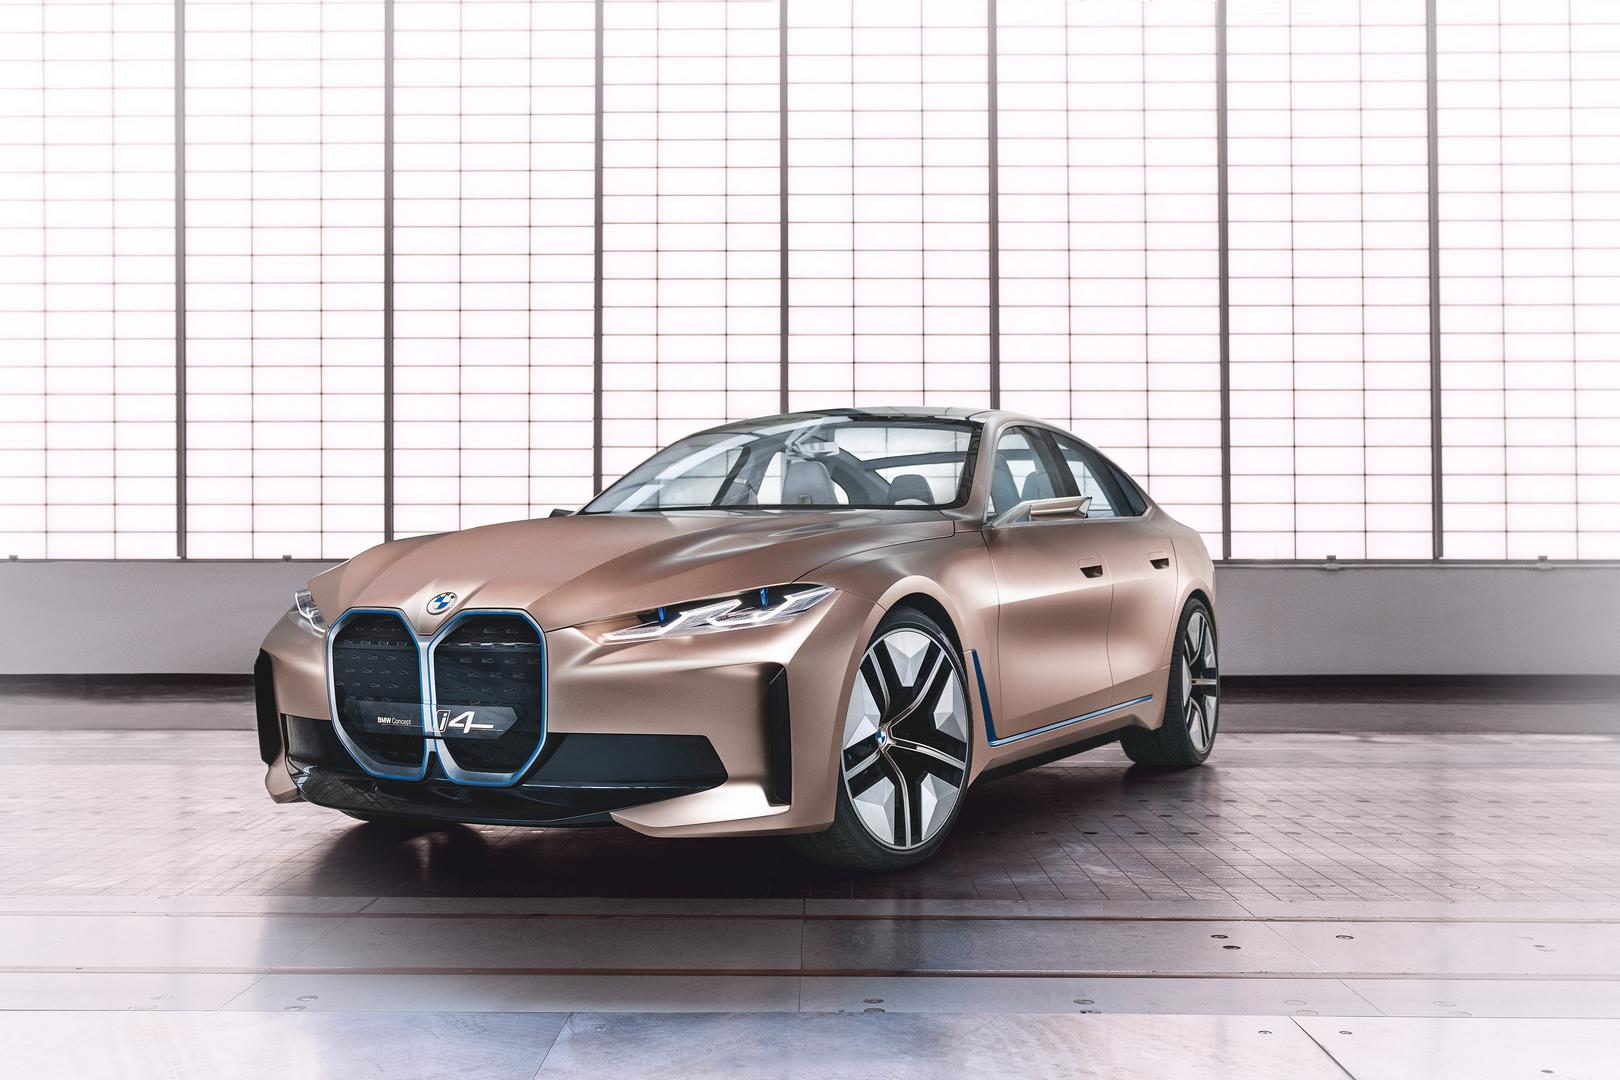 BMW Concept i4: Full Electric 4-Door Coupe Previewed